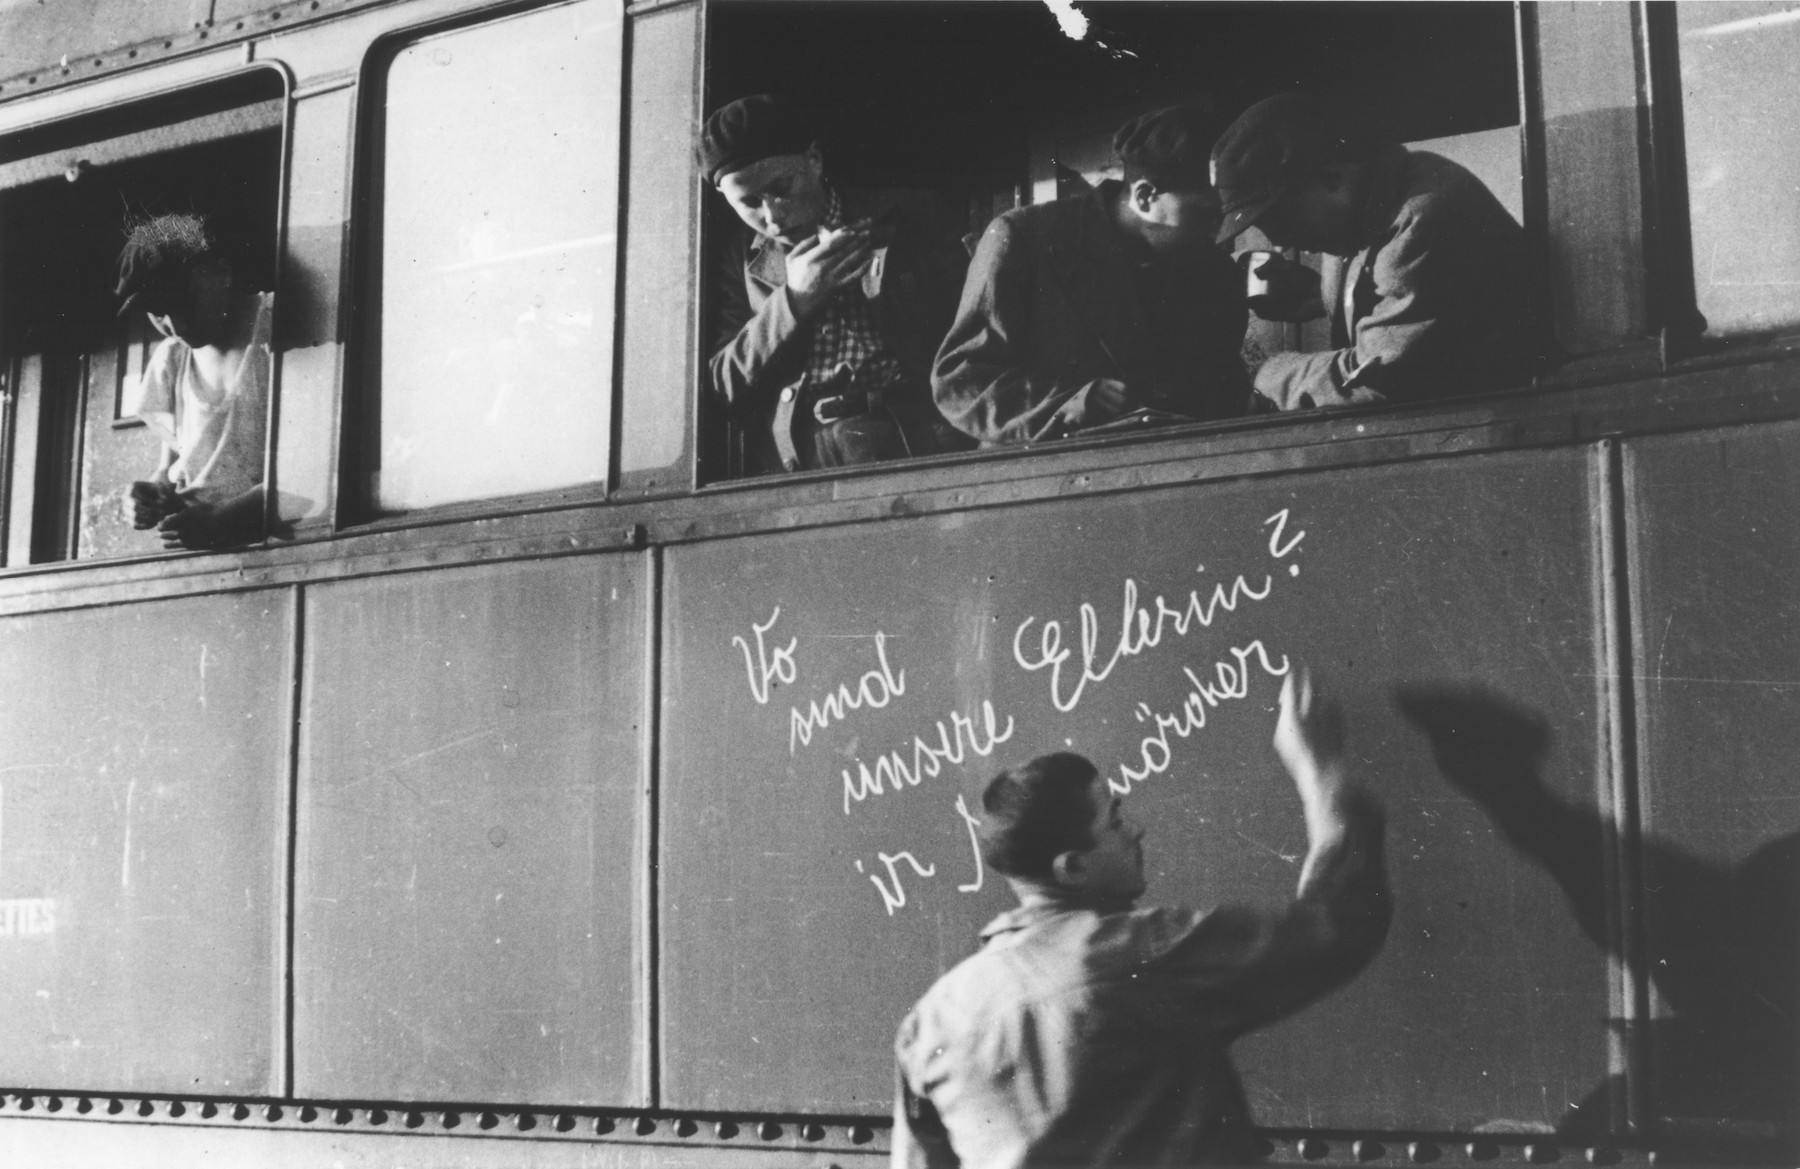 """One of the young survivors of Buchenwald writes in German """"Where are our parents?"""" on the side of a train prior to the departure of the children's transport from Buchenwald for France.  The boy writing on the side of the train is Joe Dziubak from Lodz."""